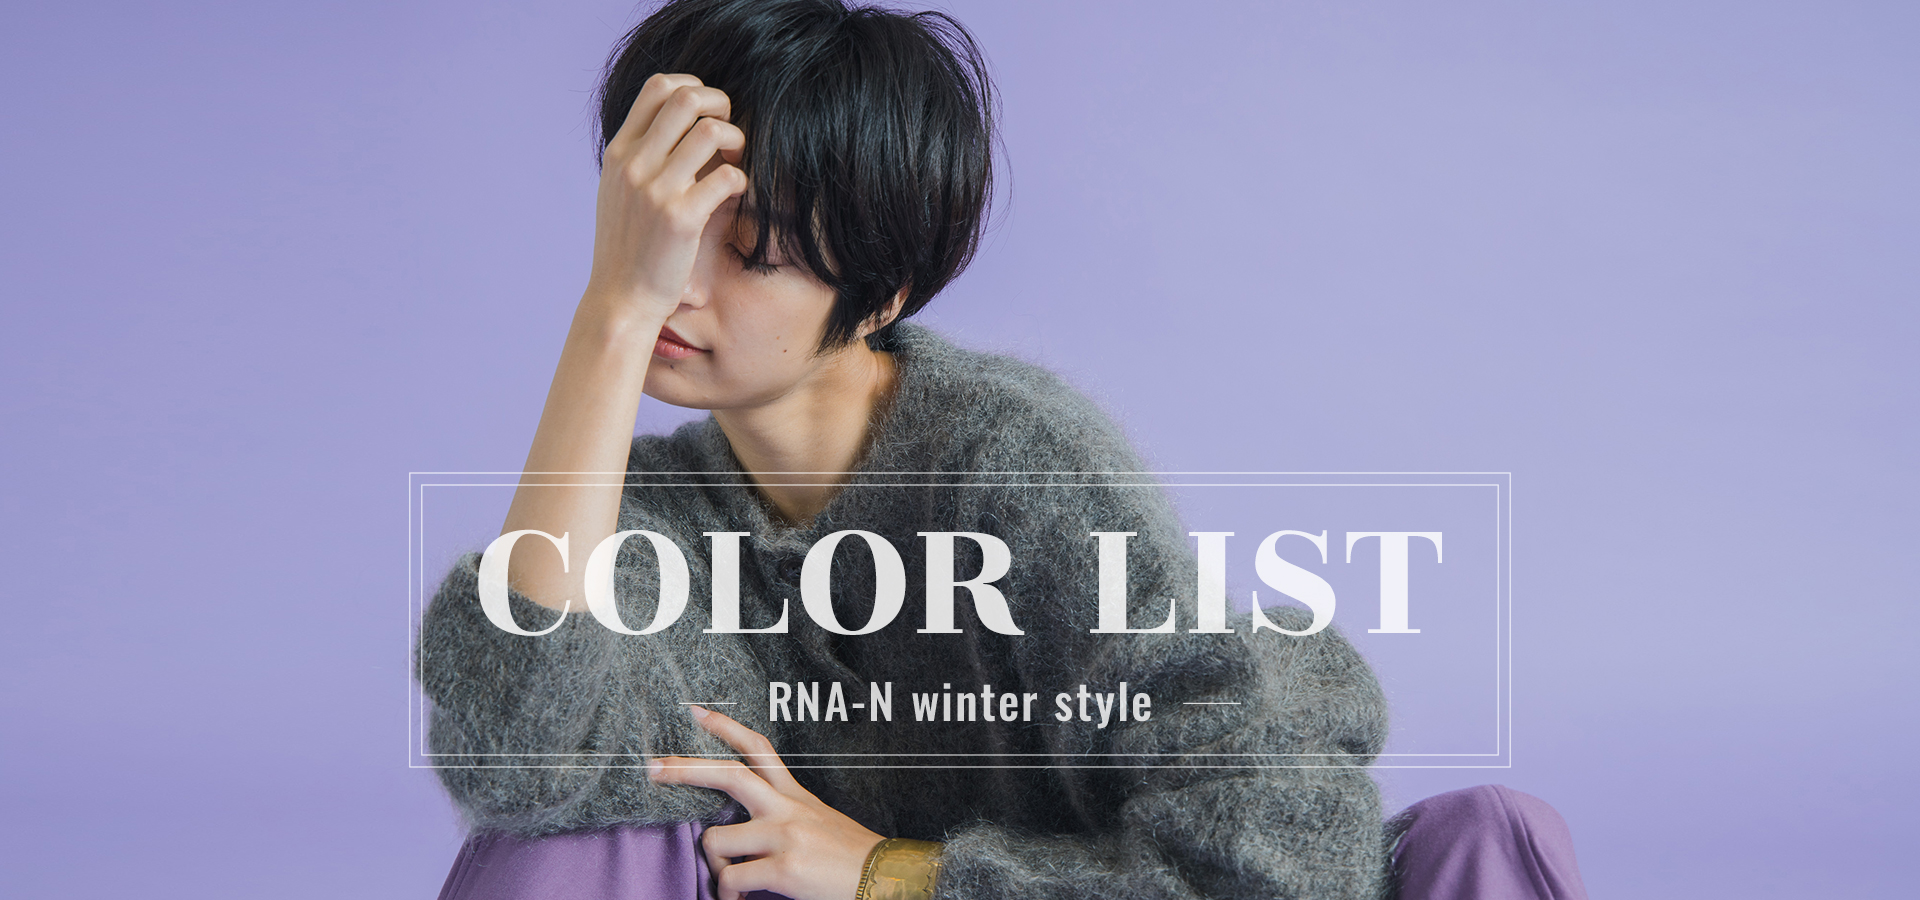 COLOR LIST -RNA-N winter style-